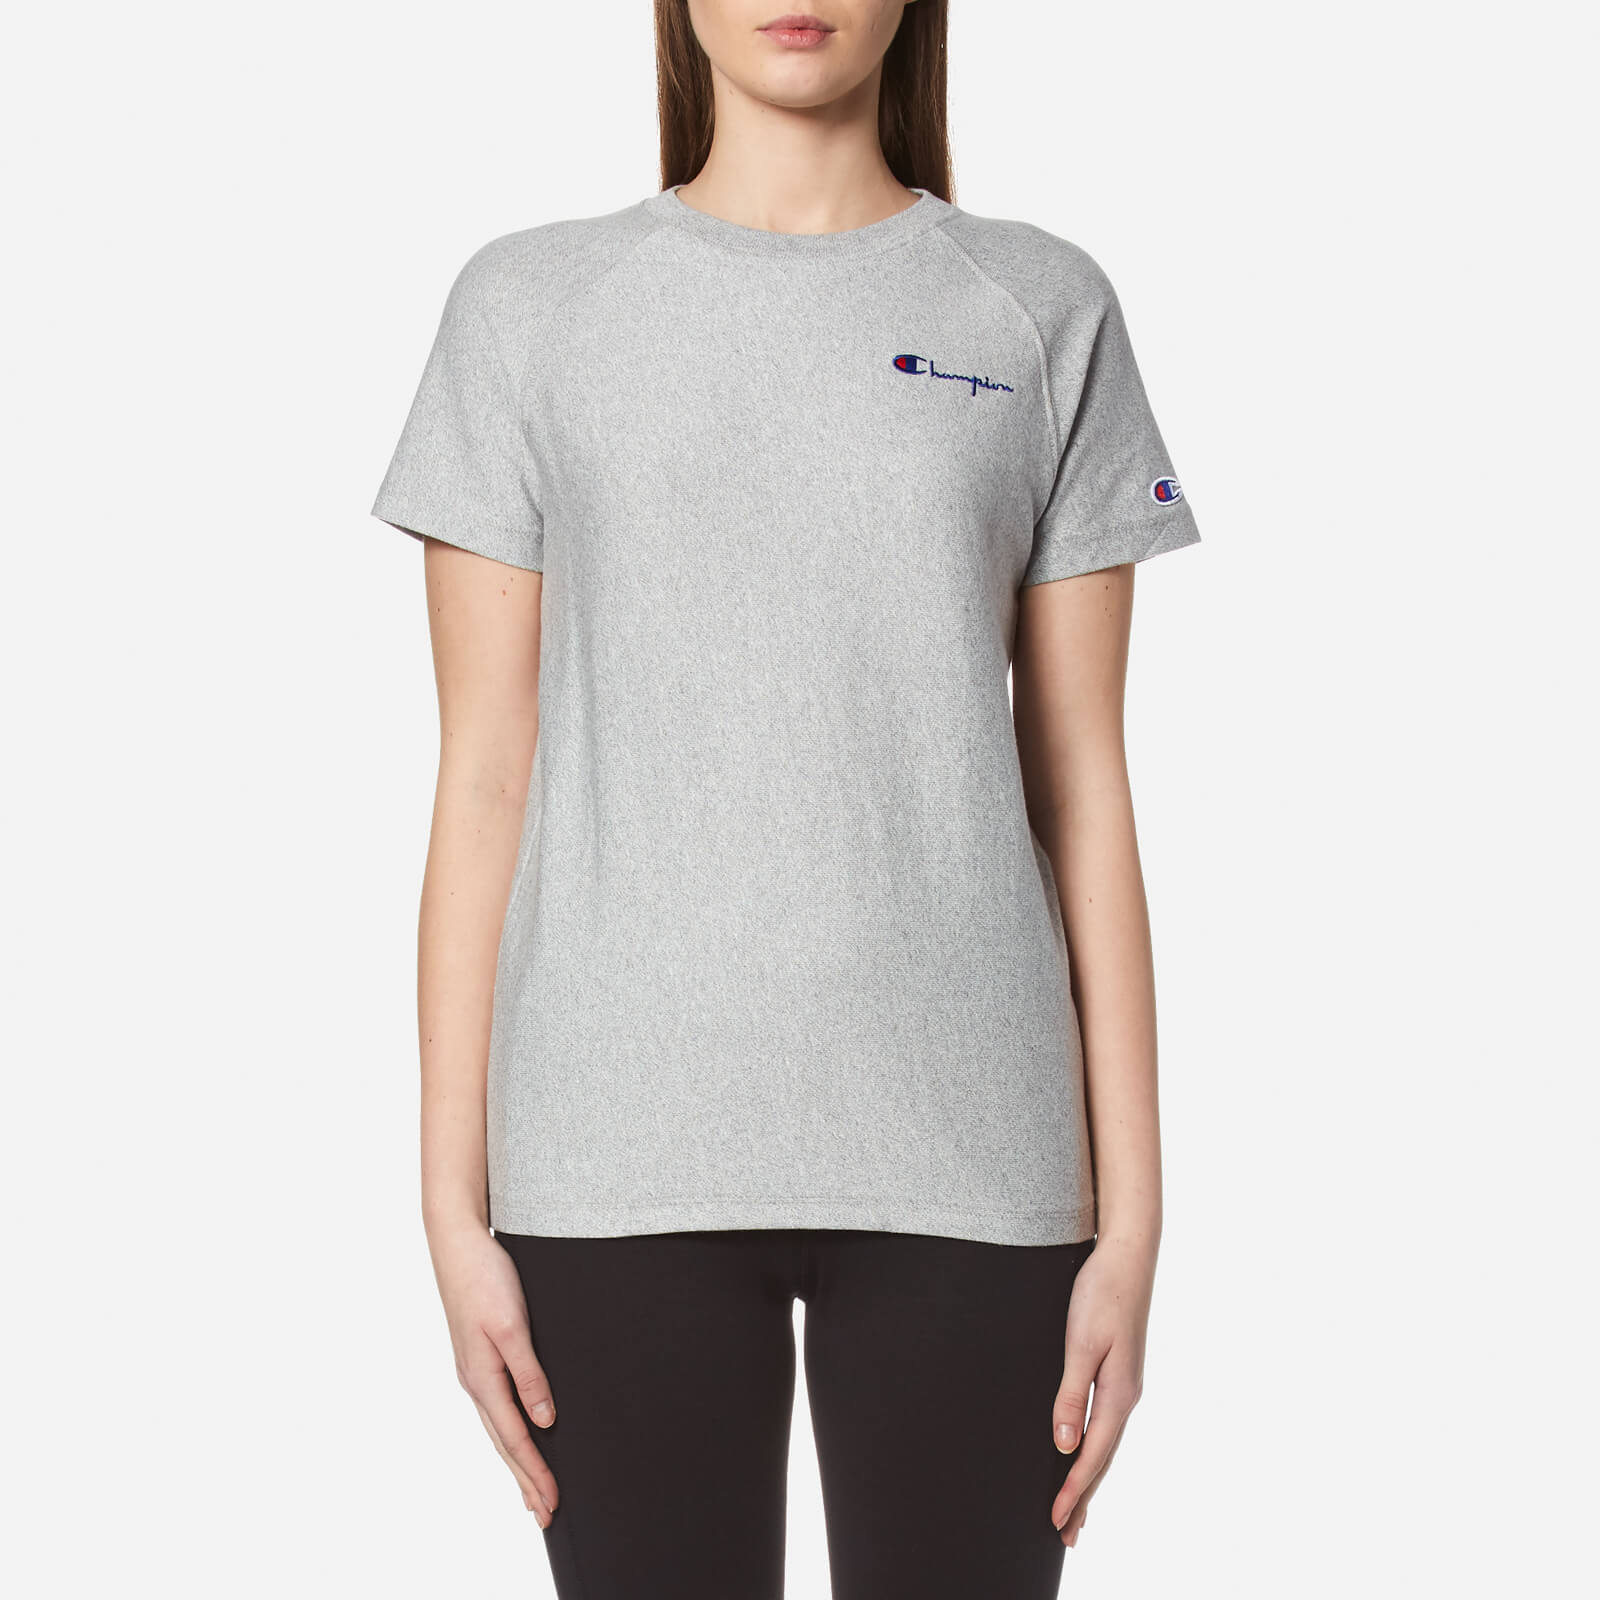 09fa8f4e3d4b Champion Women's Crew Neck T-Shirt - Grey - Free UK Delivery over £50